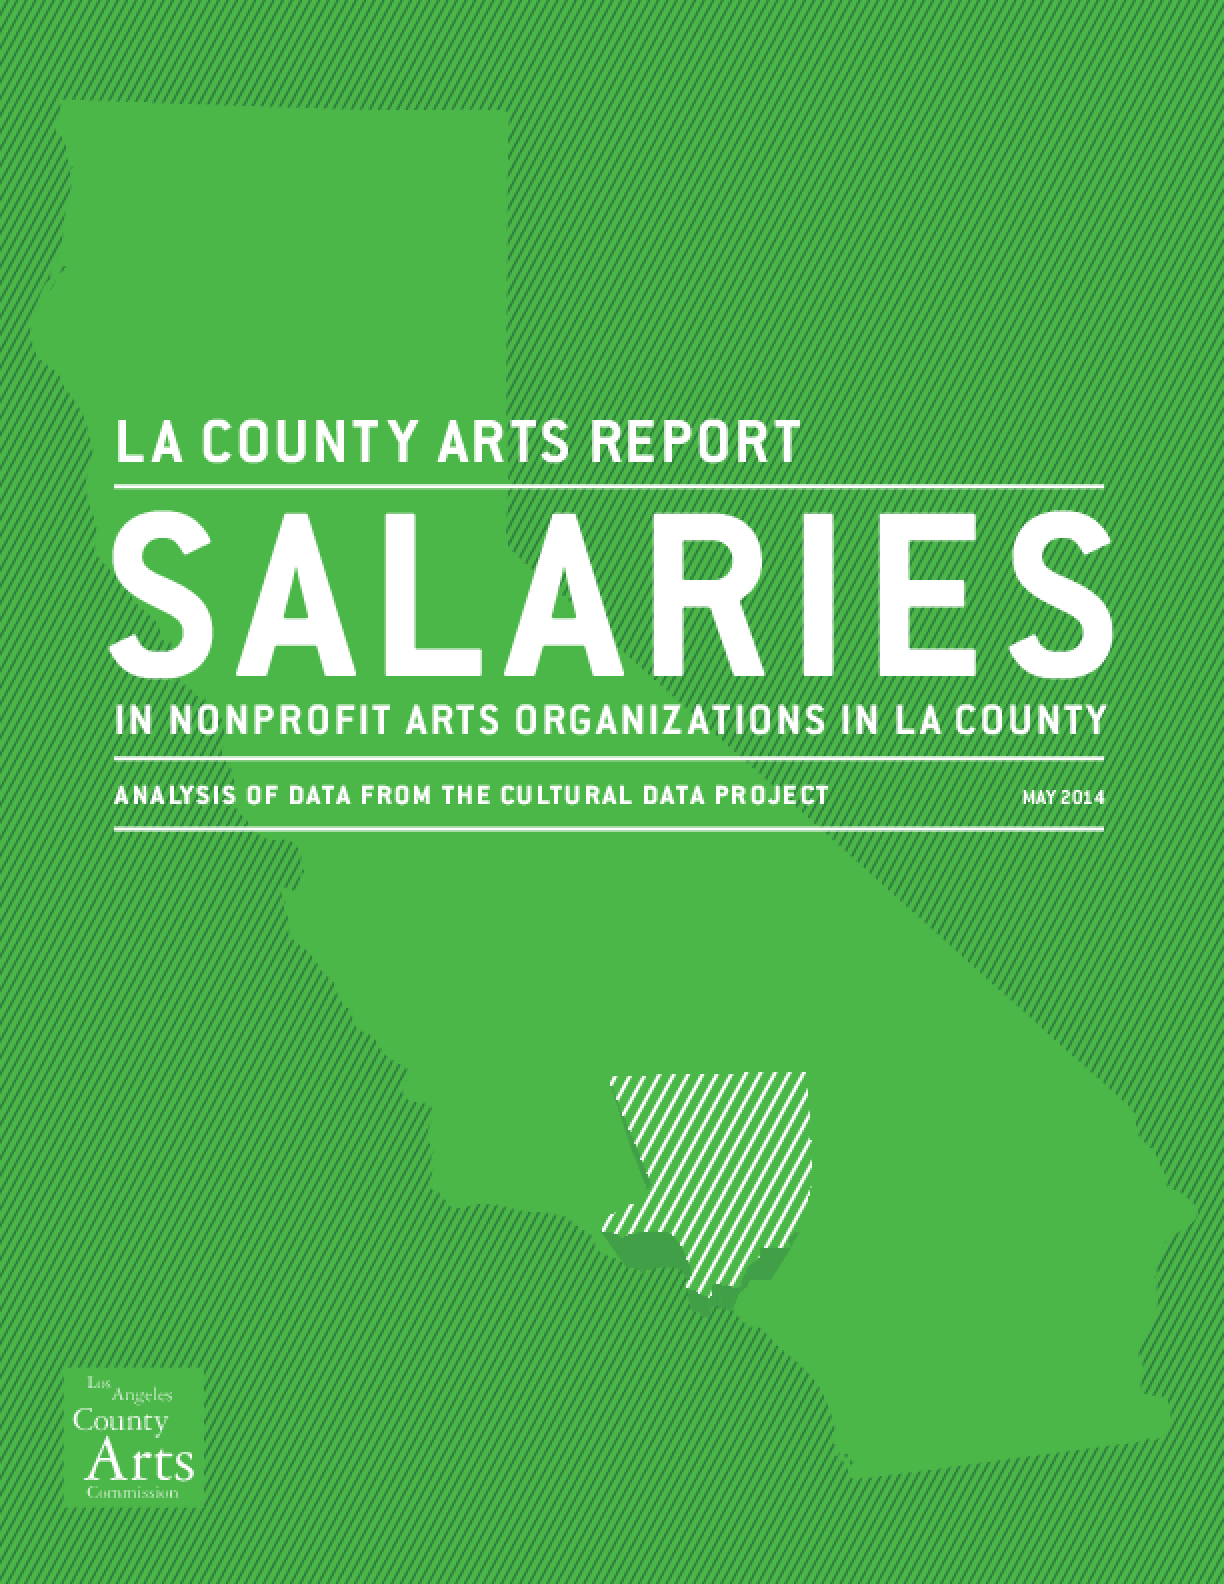 Salaries in Nonprofit Arts Organizations in LA County